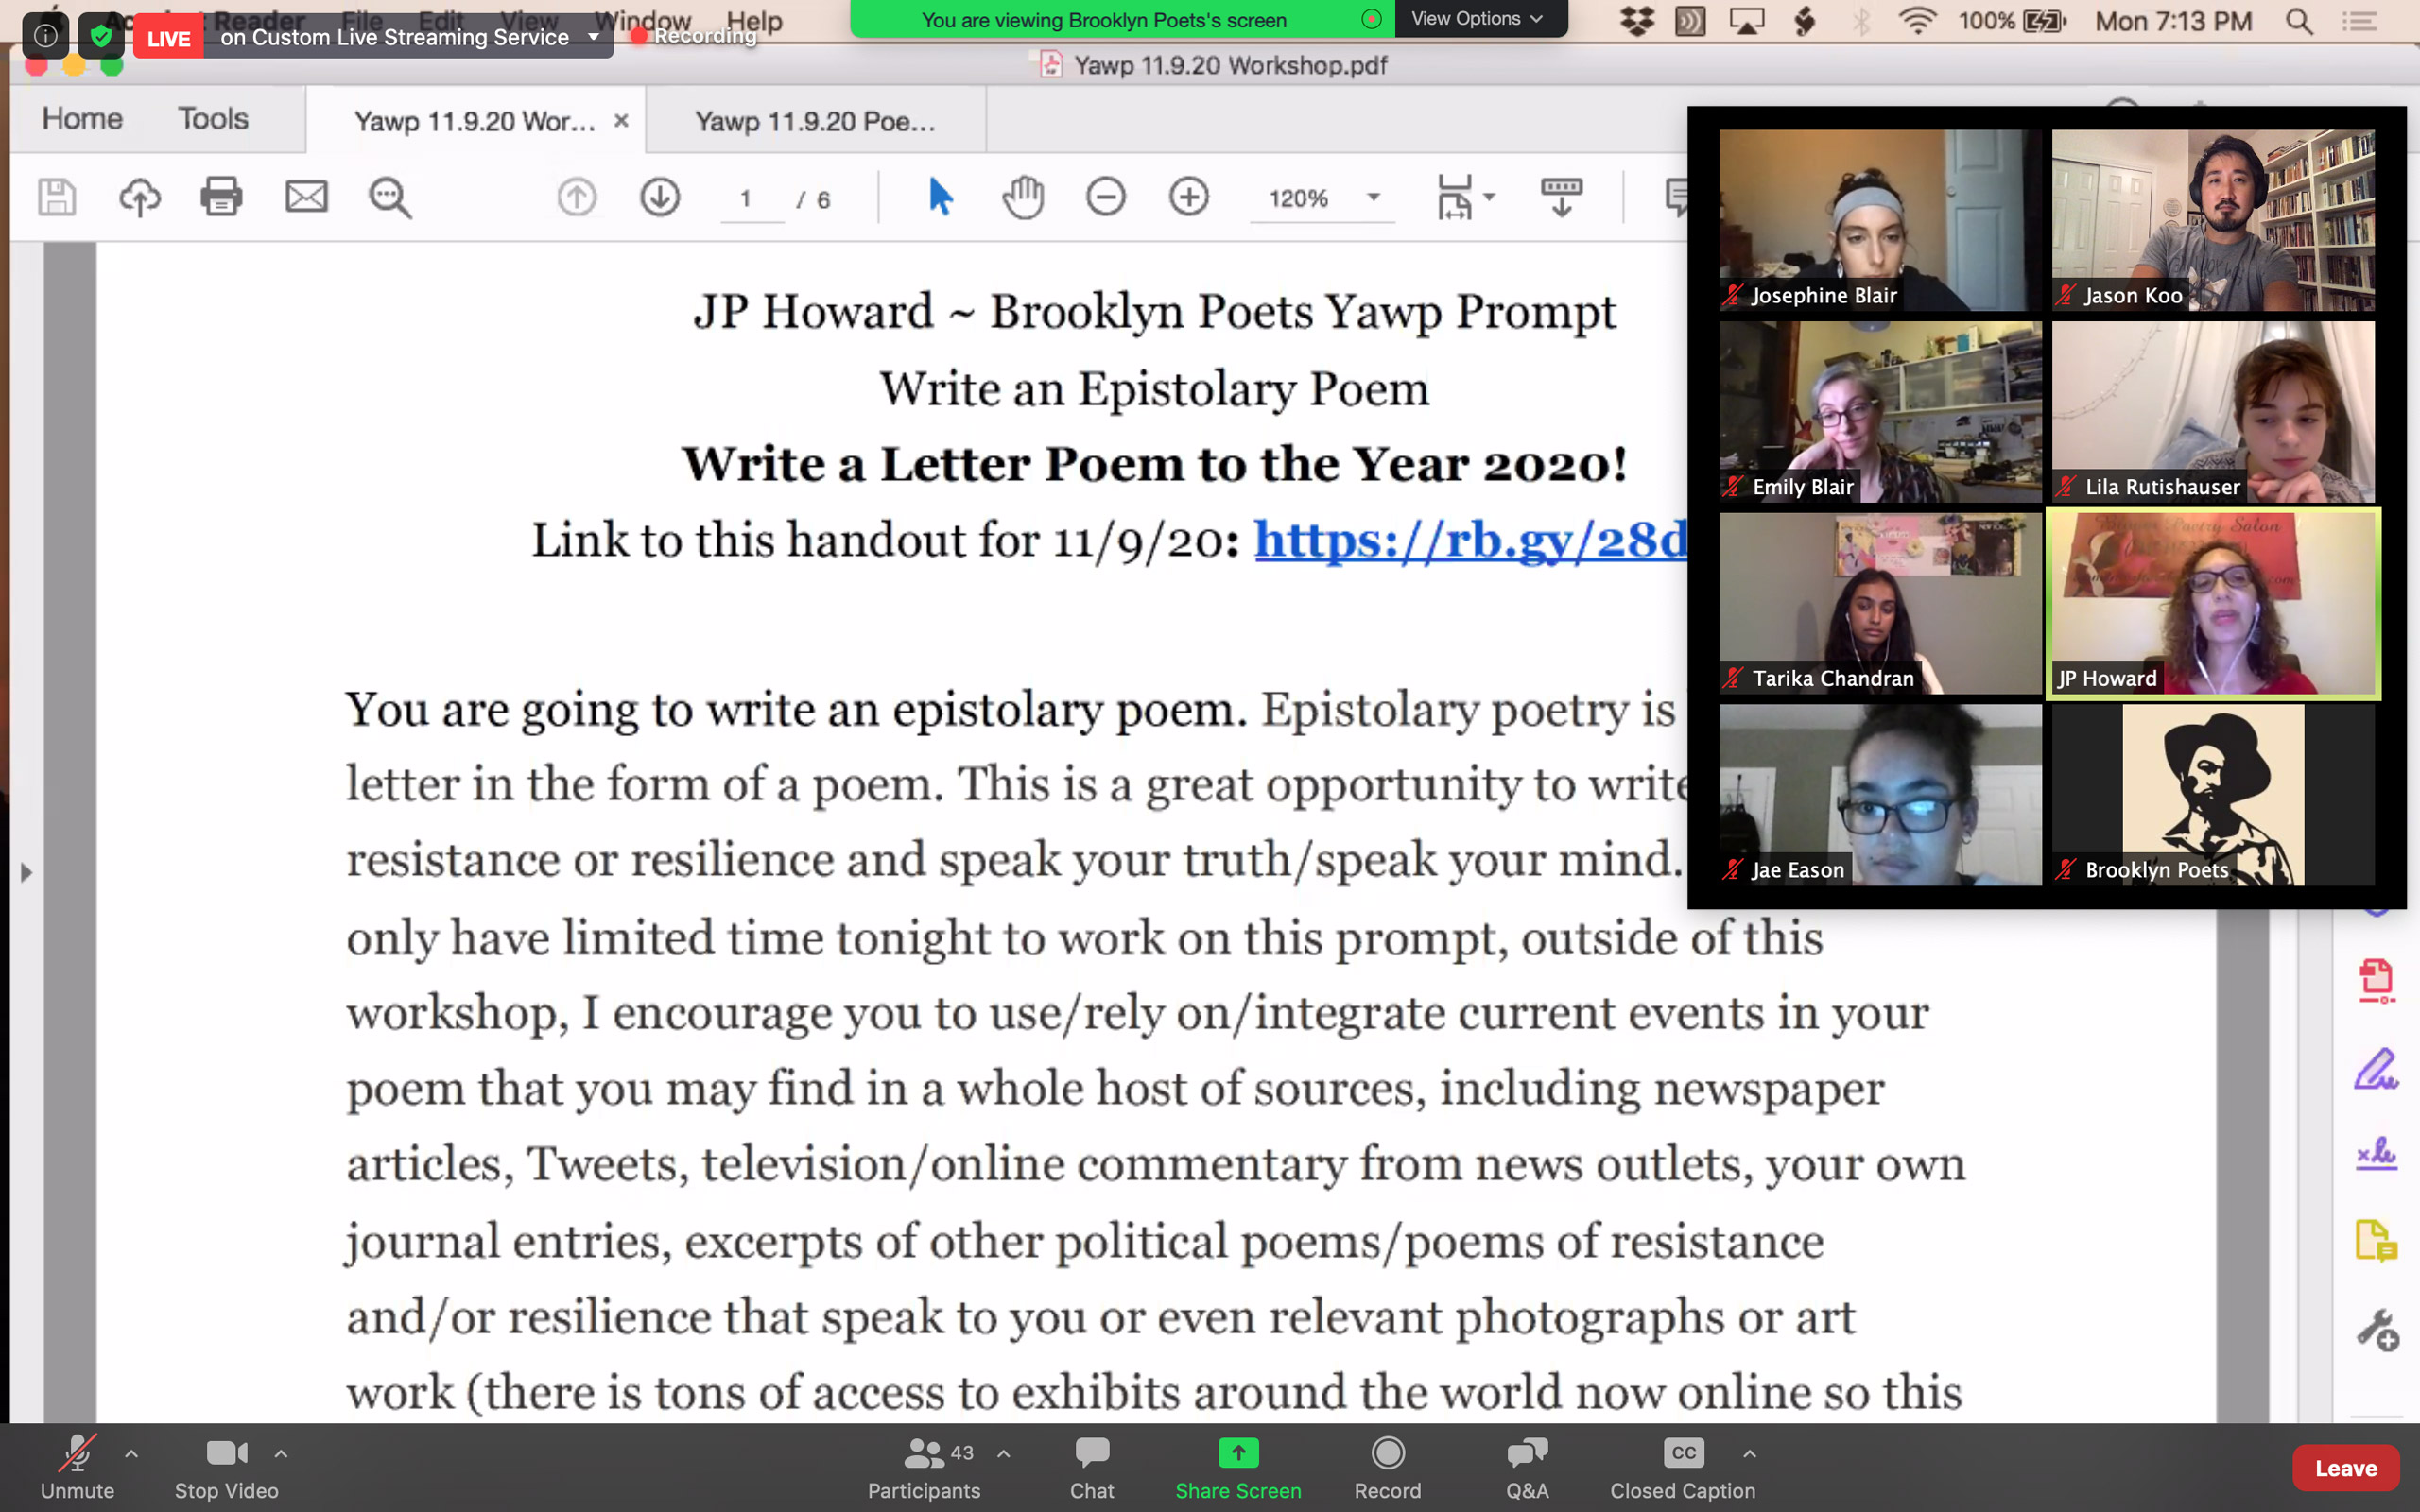 JP Howard leads the Yawp with an Epistolary Poem exercise